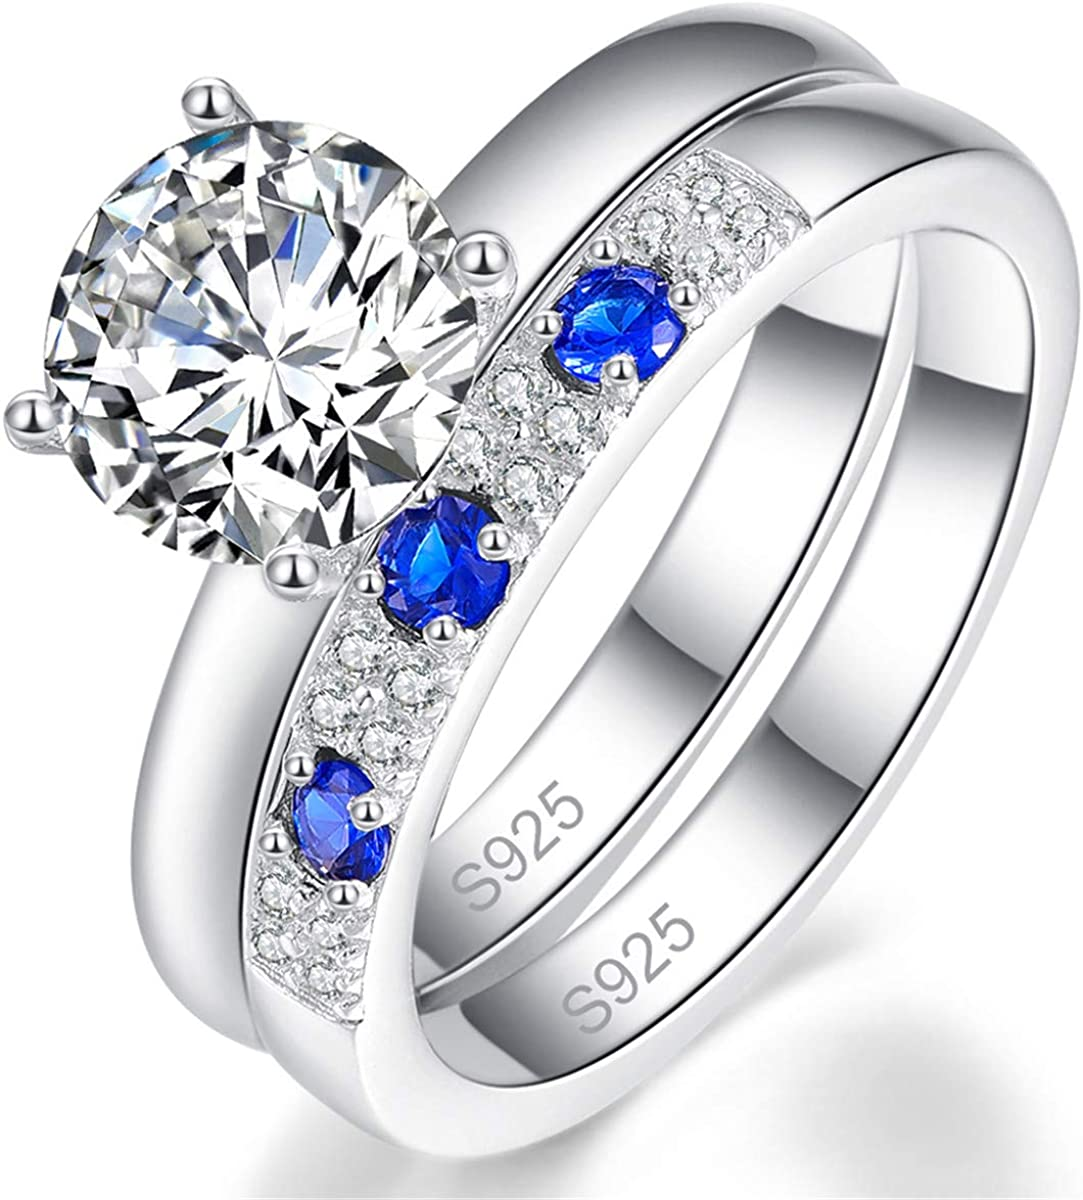 BONLAVIE Wedding Engagement Rings Set Bridal Sets Ring 925 Sterling Silver Created Sapphire Size 6-9